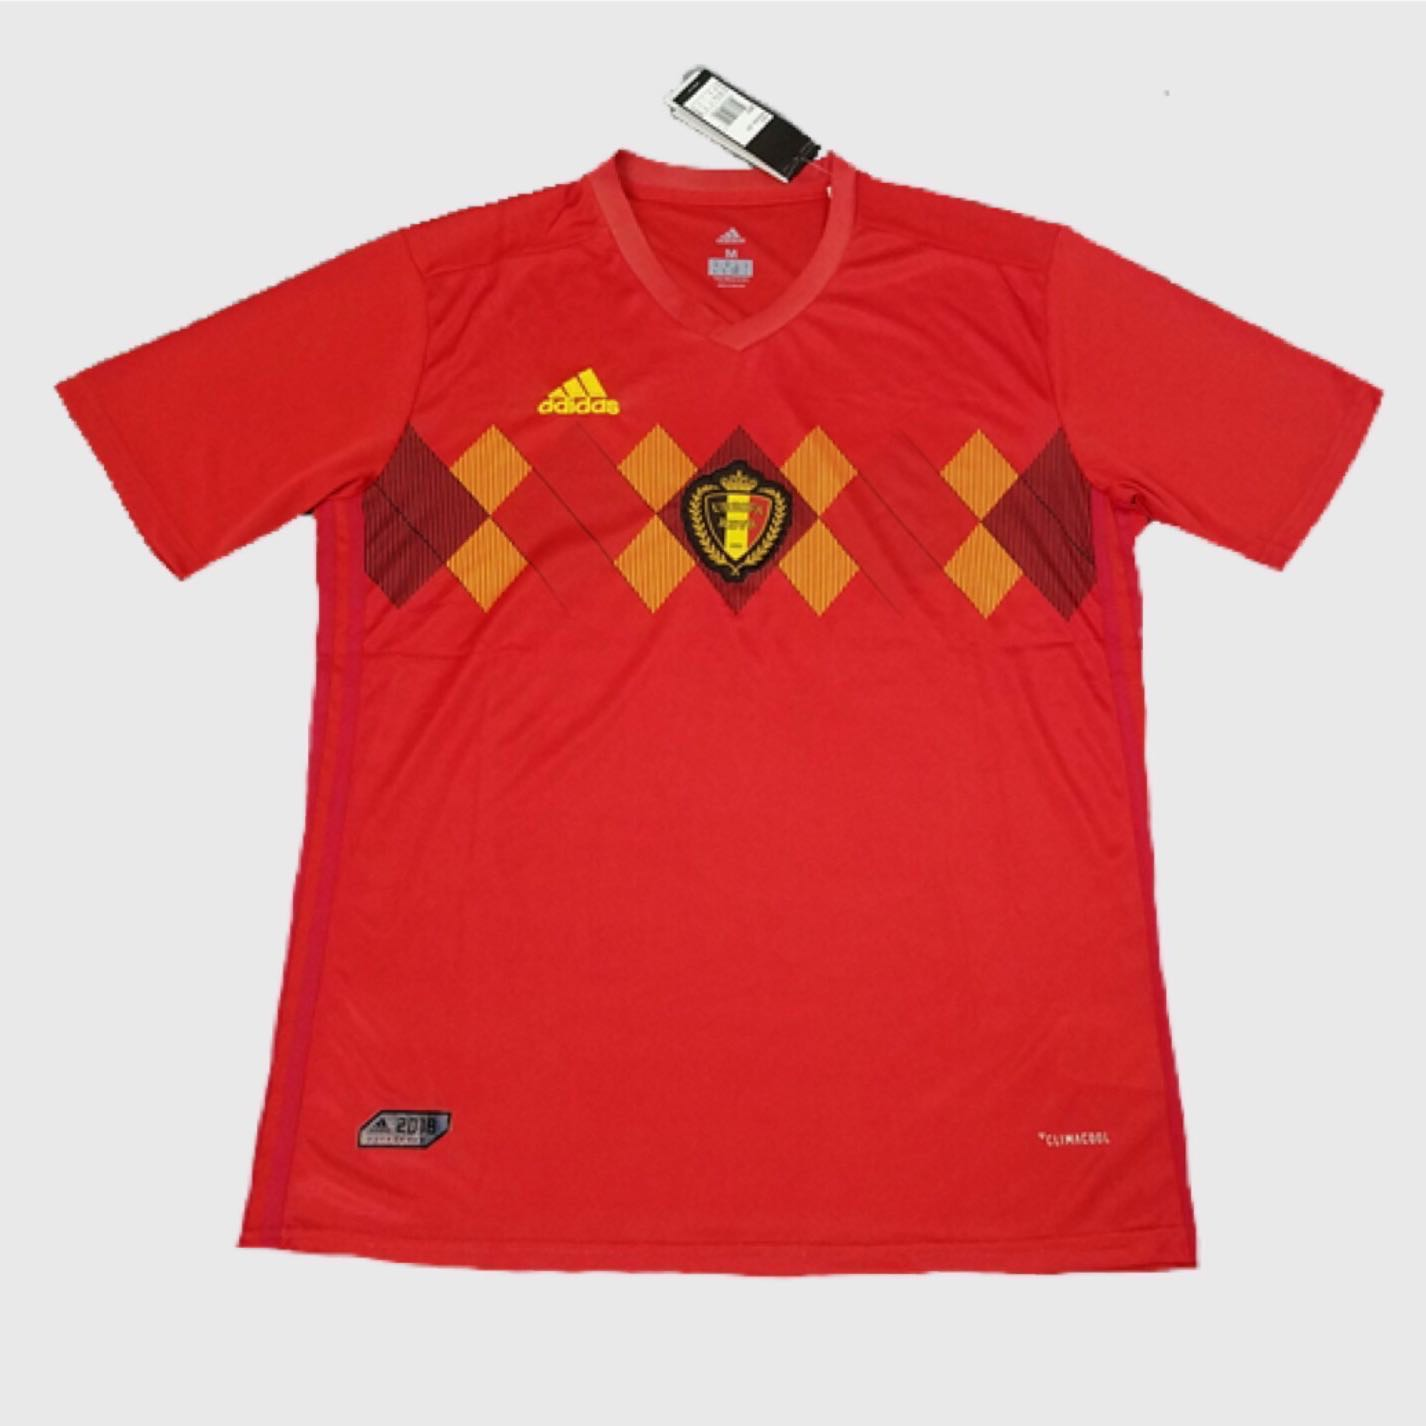 d0c610b492e ❗️SALE❗️Belgium 2018 World Cup Home/Away Jersey, Sports, Sports ...